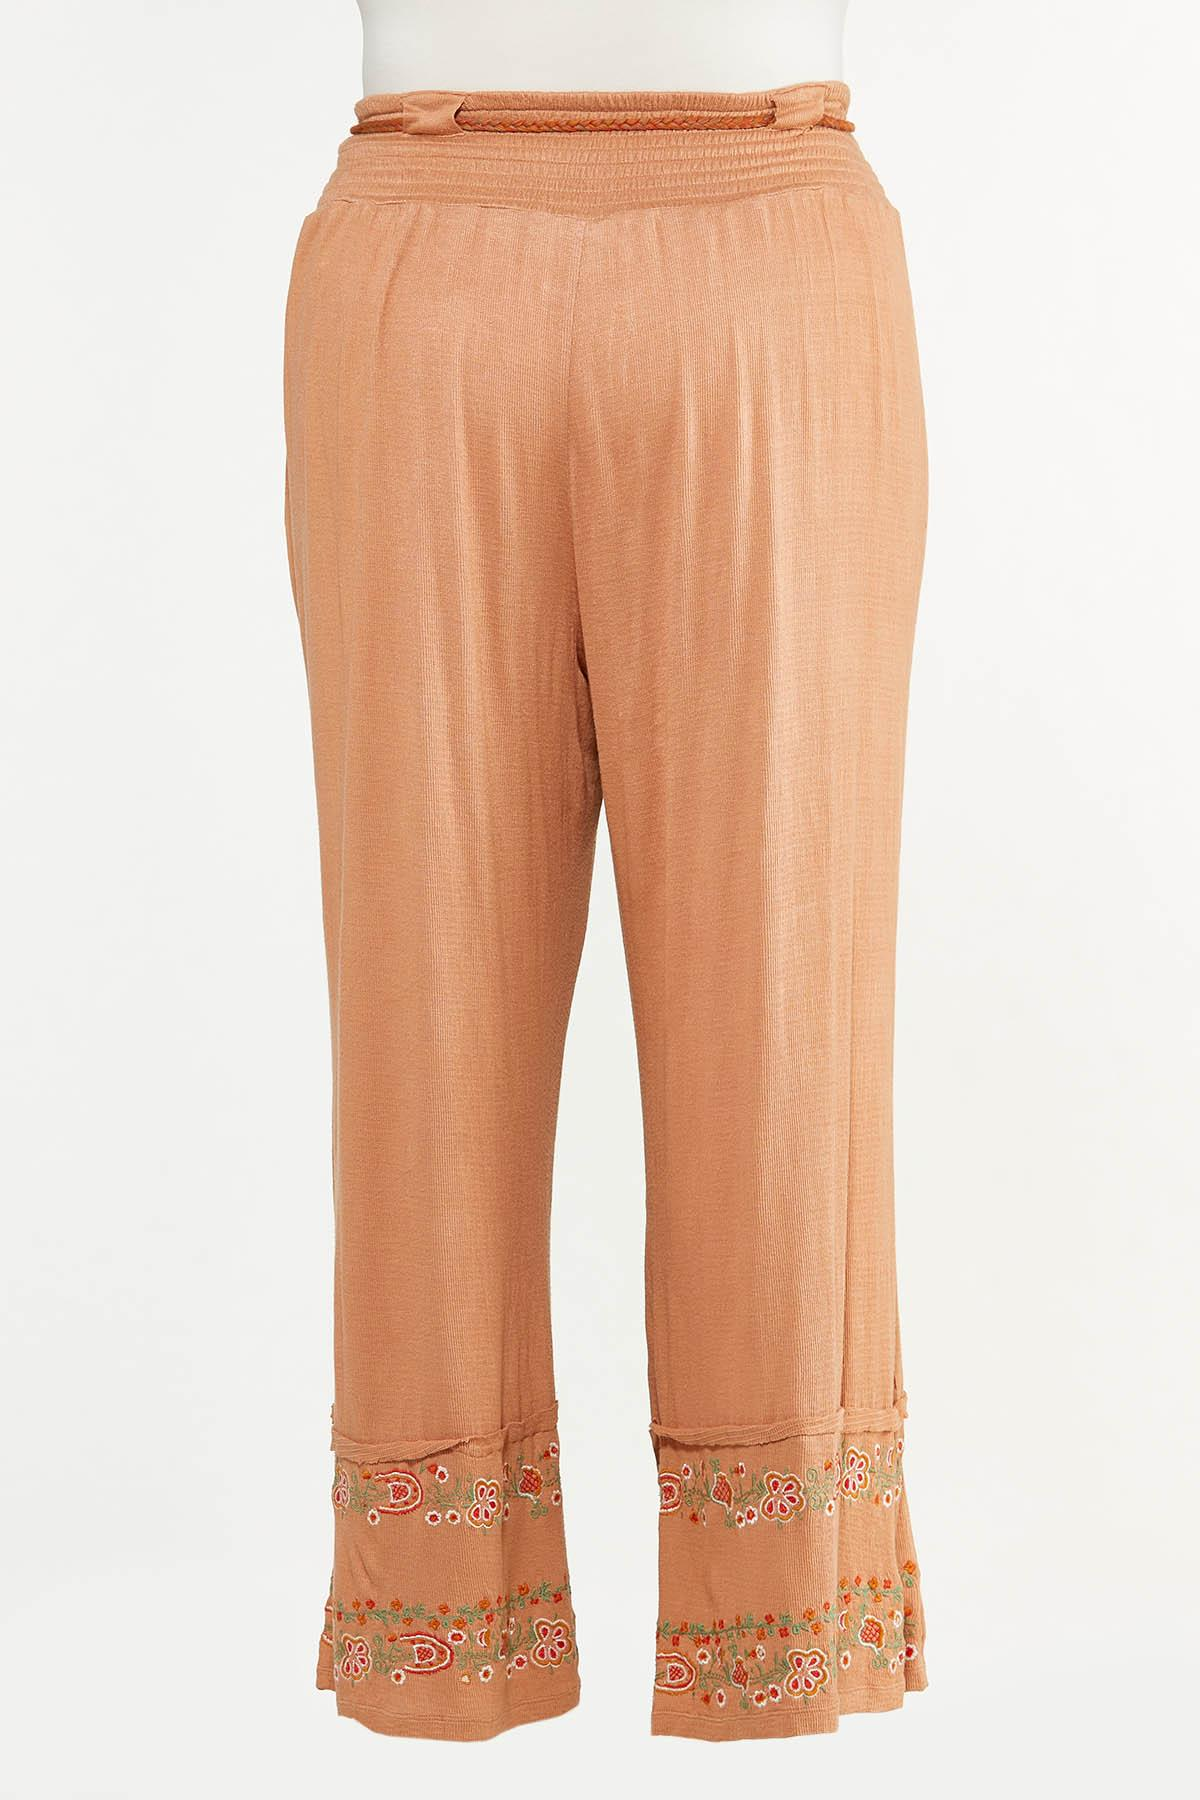 Plus Size Floral Embroidered Pants (Item #44614607)